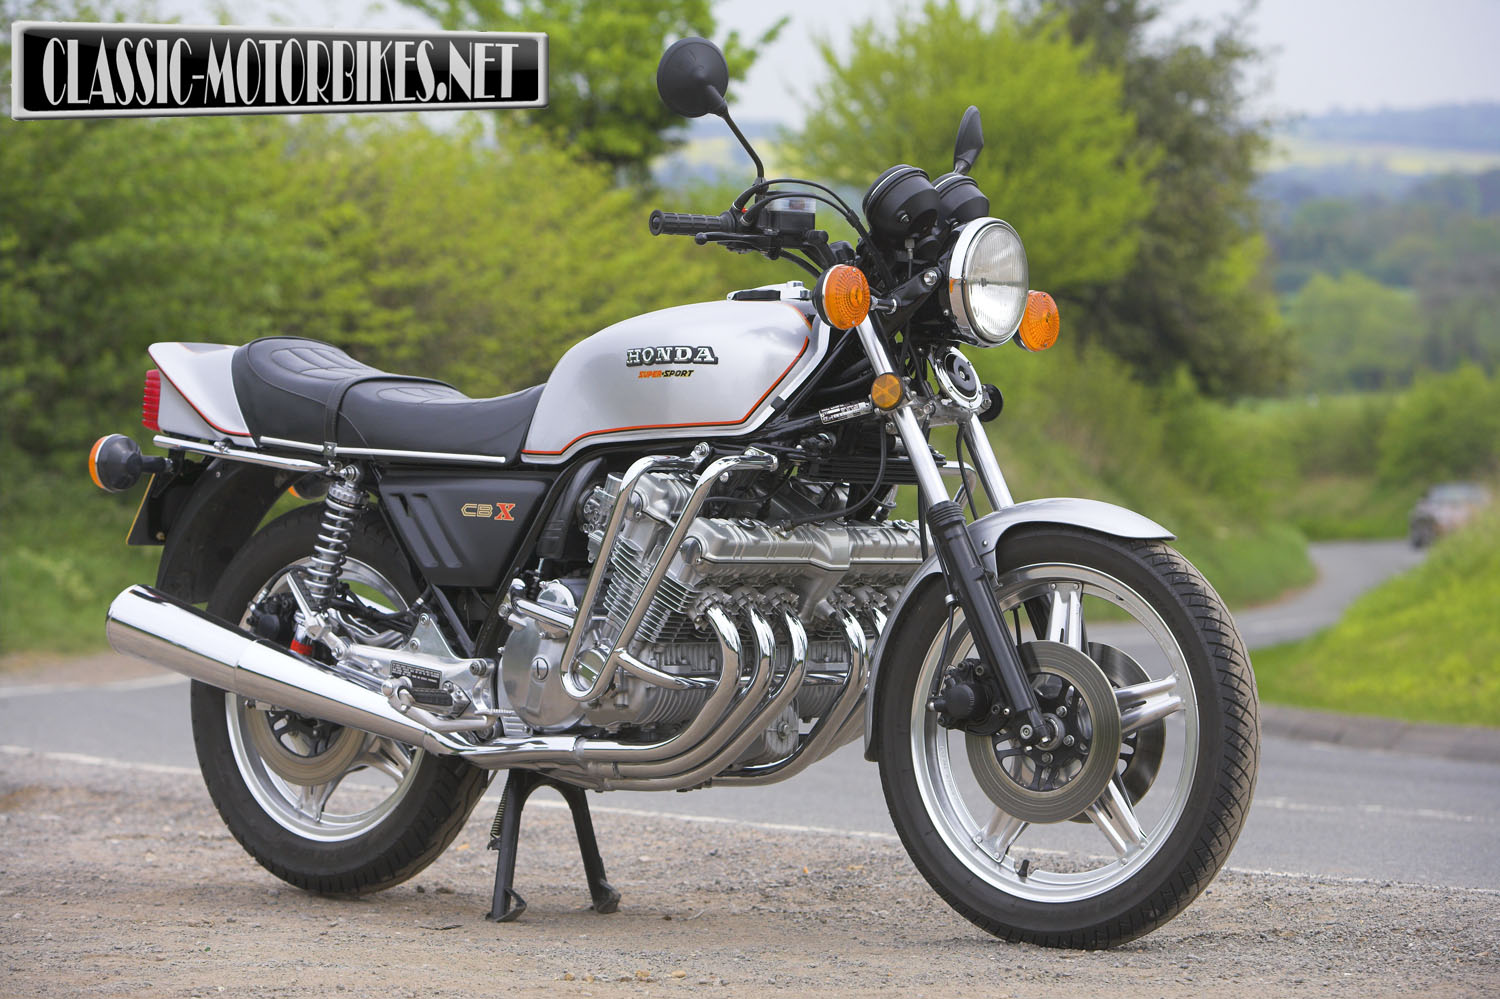 honda cbx1000 road test classic motorbikes. Black Bedroom Furniture Sets. Home Design Ideas